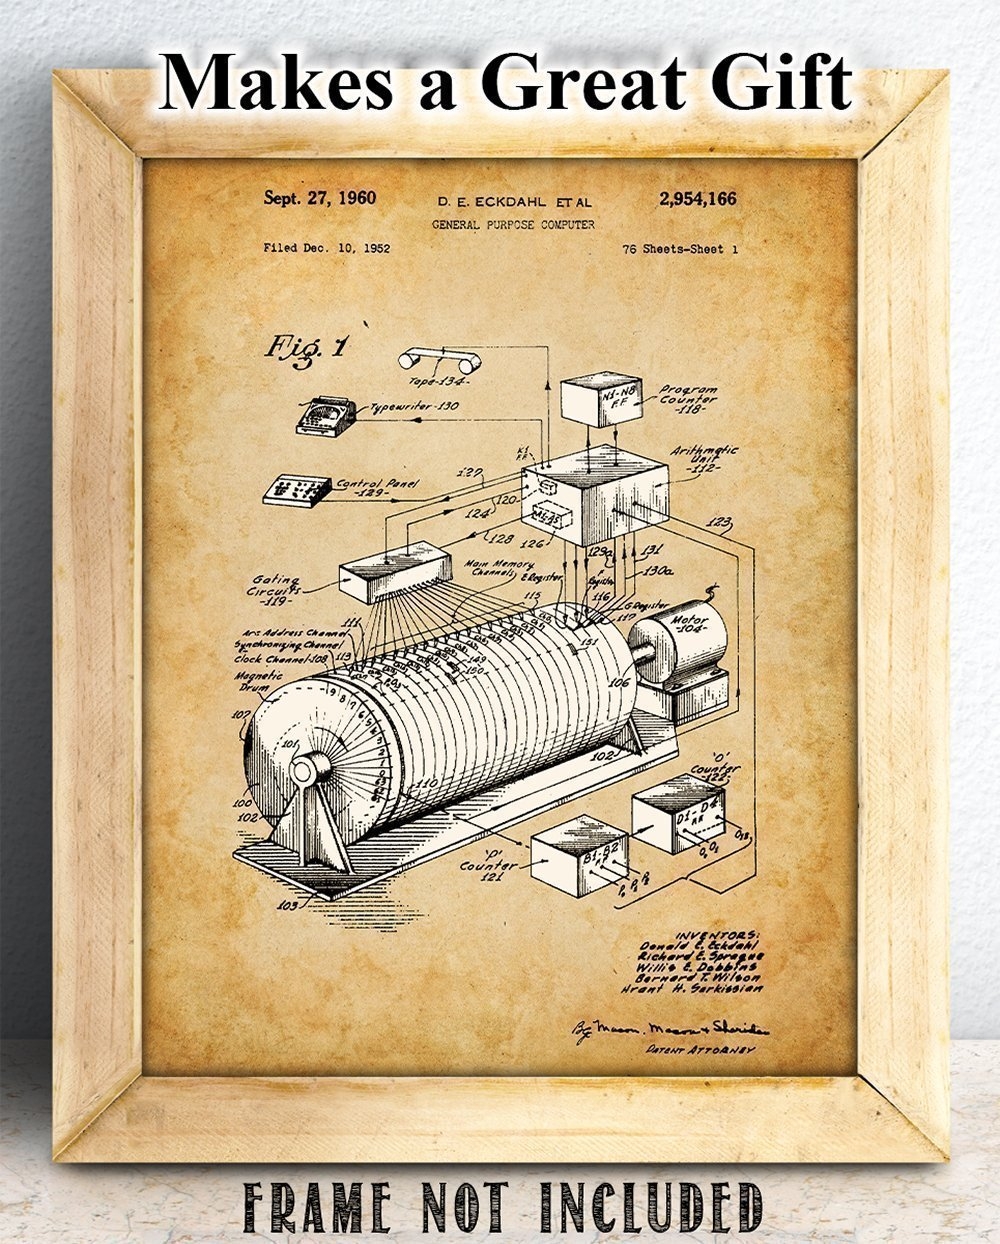 Eckdahl Computer 1960 Patent - 11x14 Unframed Patent Print - Great Gift for IT Professionals, Programmers and Geeks by Personalized Signs by Lone Star Art (Image #3)